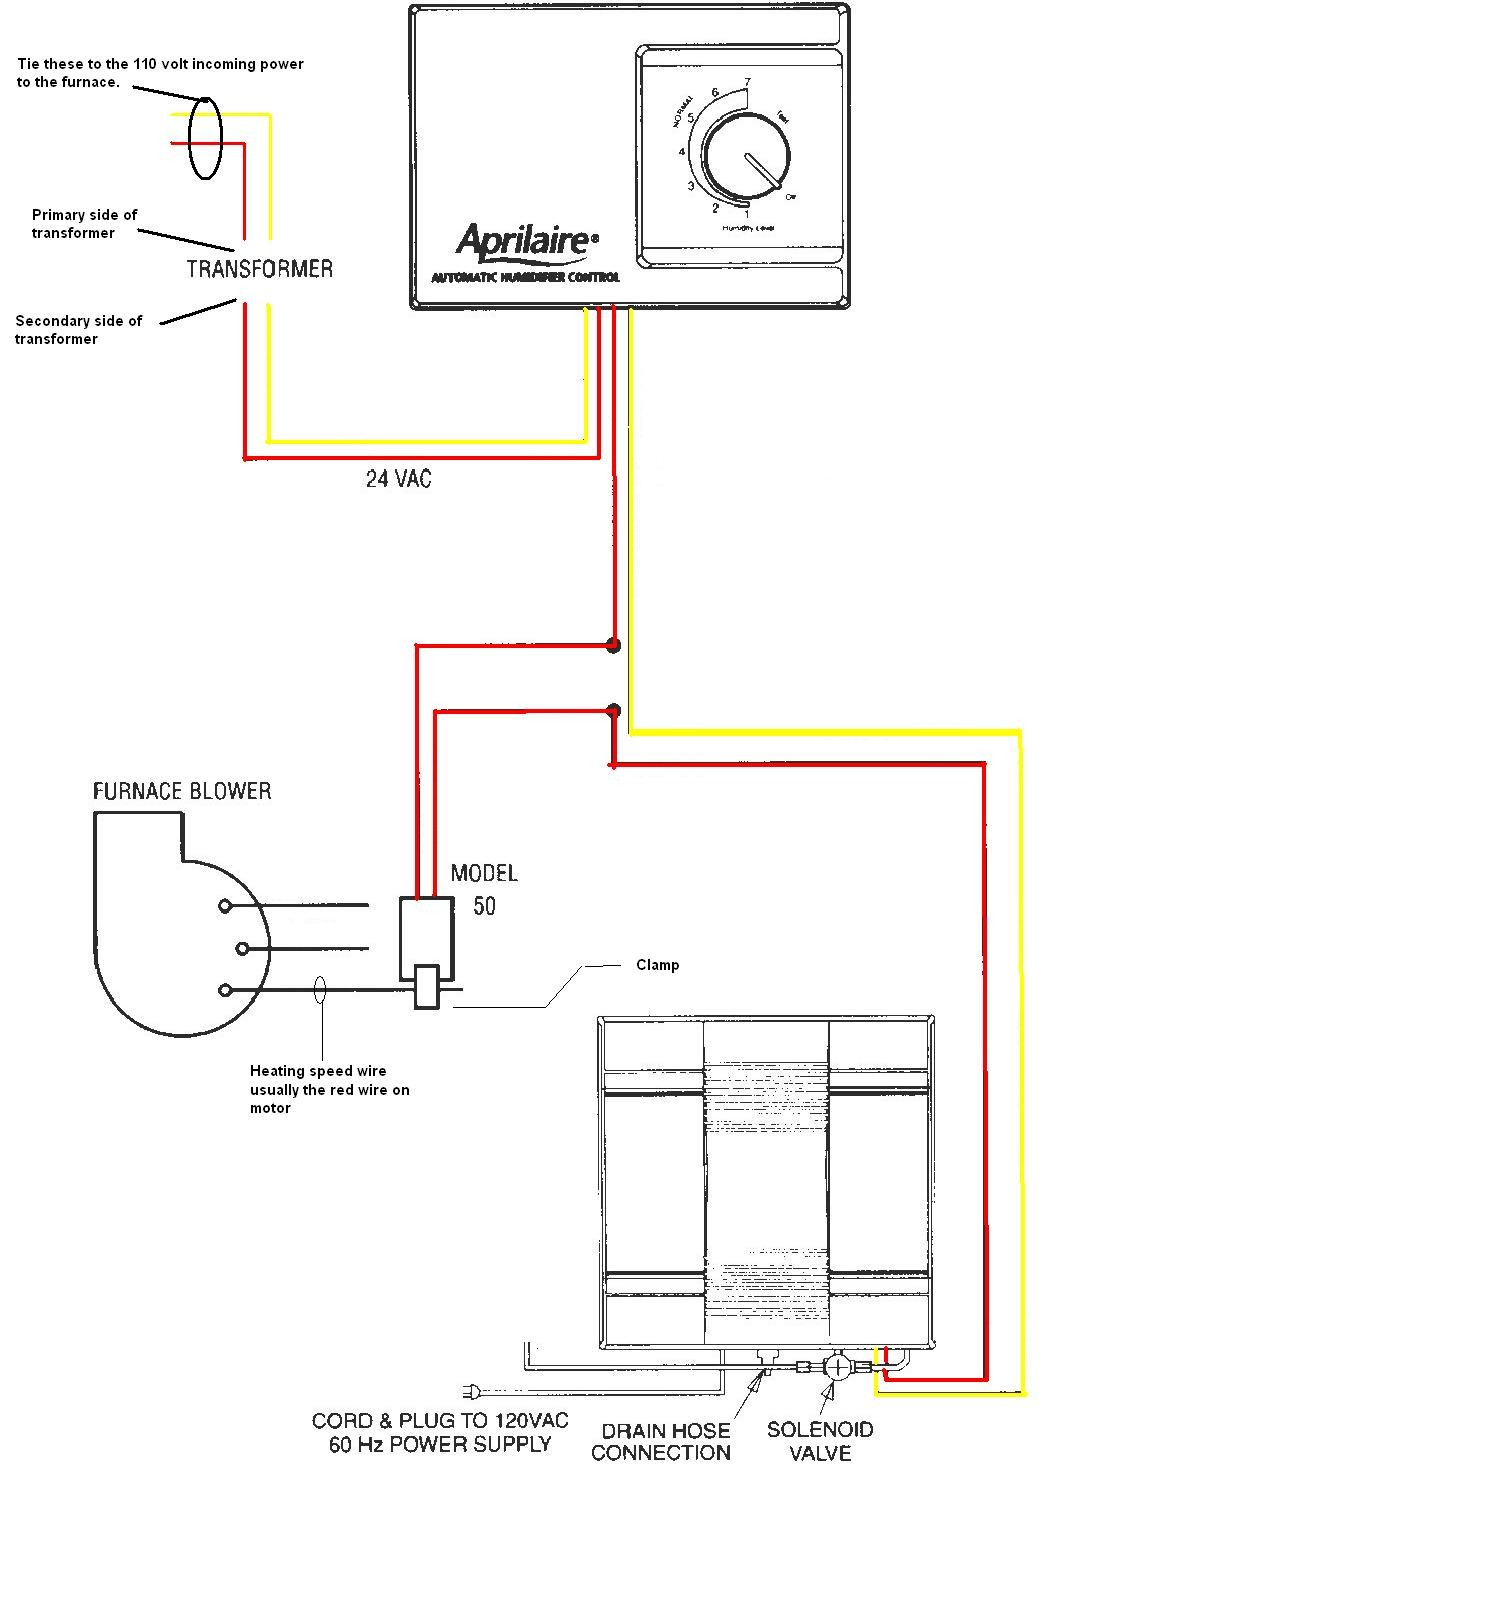 Wiring Diagram Aprilaire 600 Humidifier | Wiring Diagram